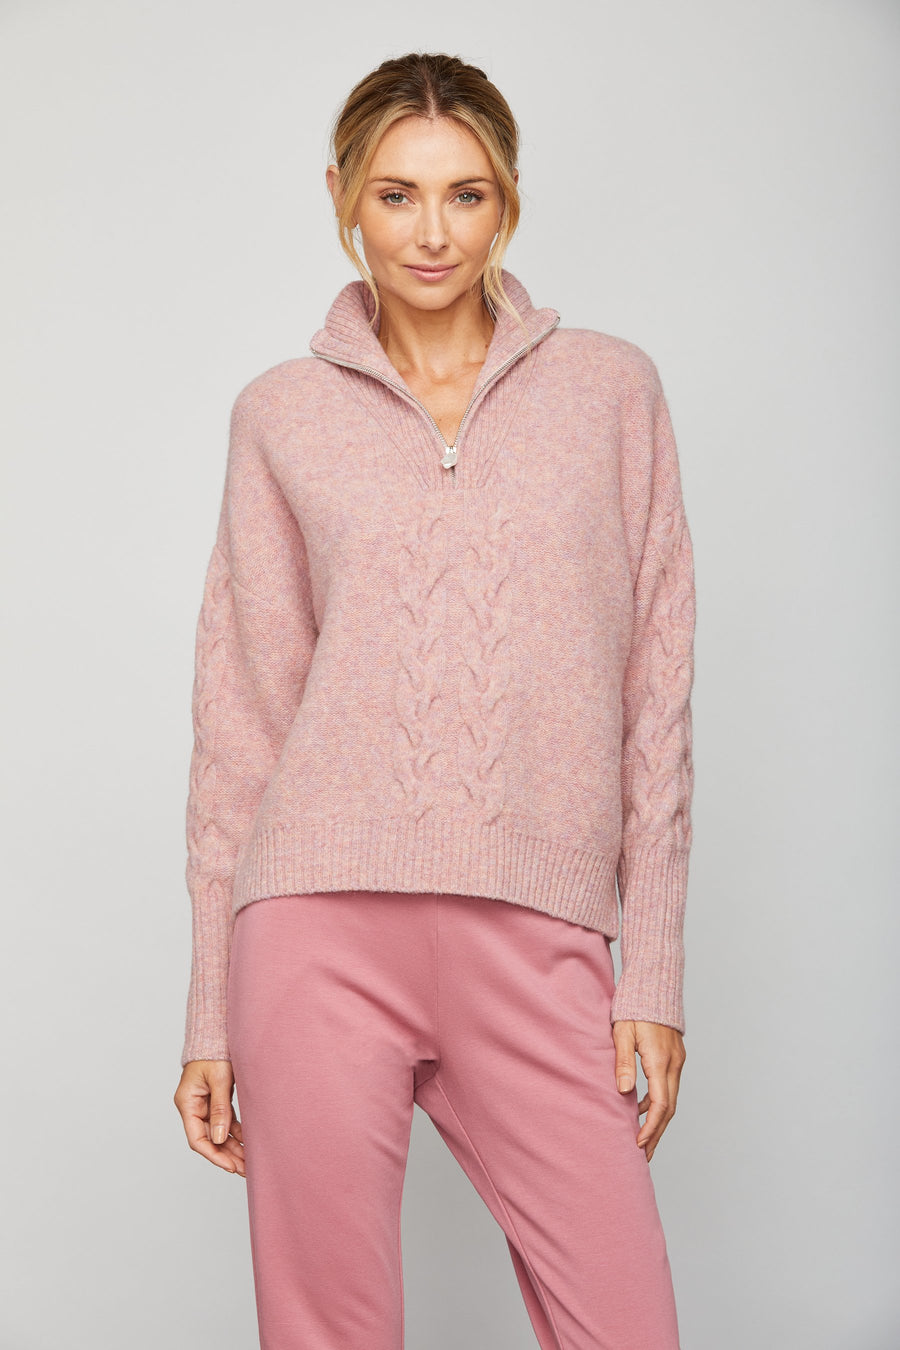 Holland Sweater - ShopMadisonbelle